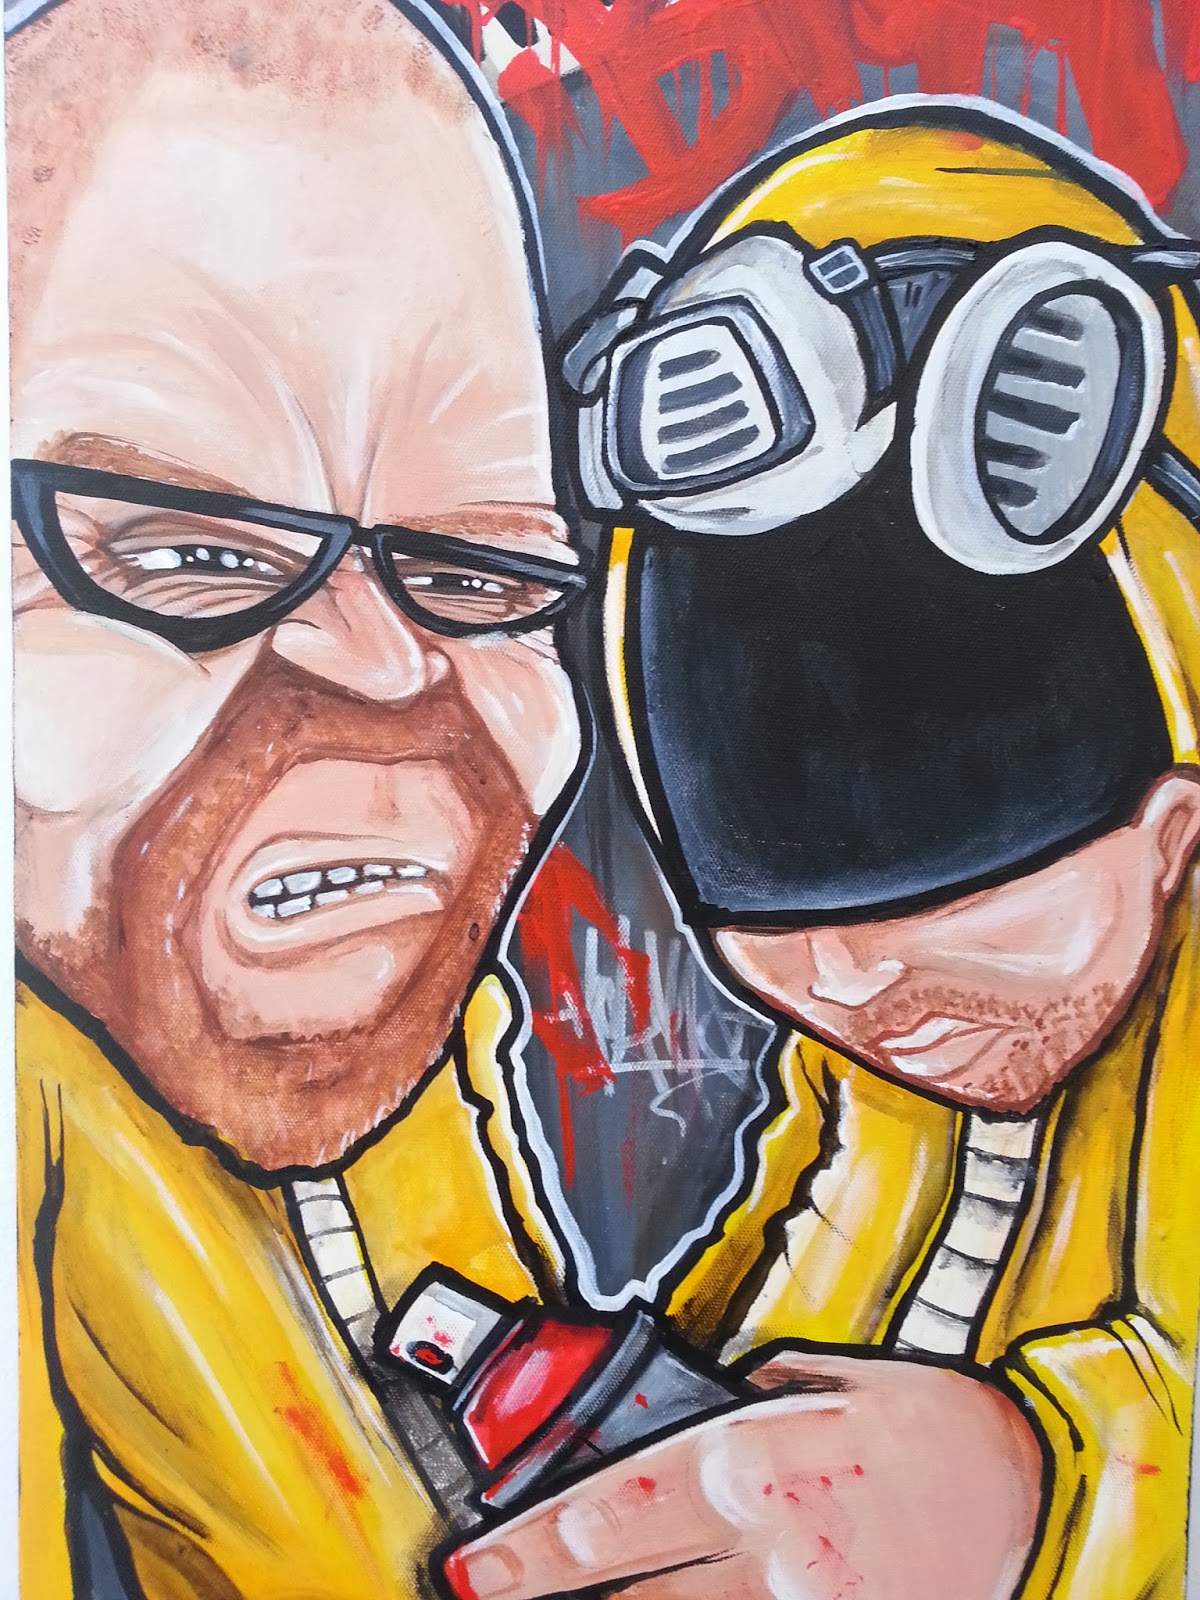 http://hoakser.bigcartel.com/product/breaking-bad-spraycan-bad-graffiti-acrylic-on-canvas-original